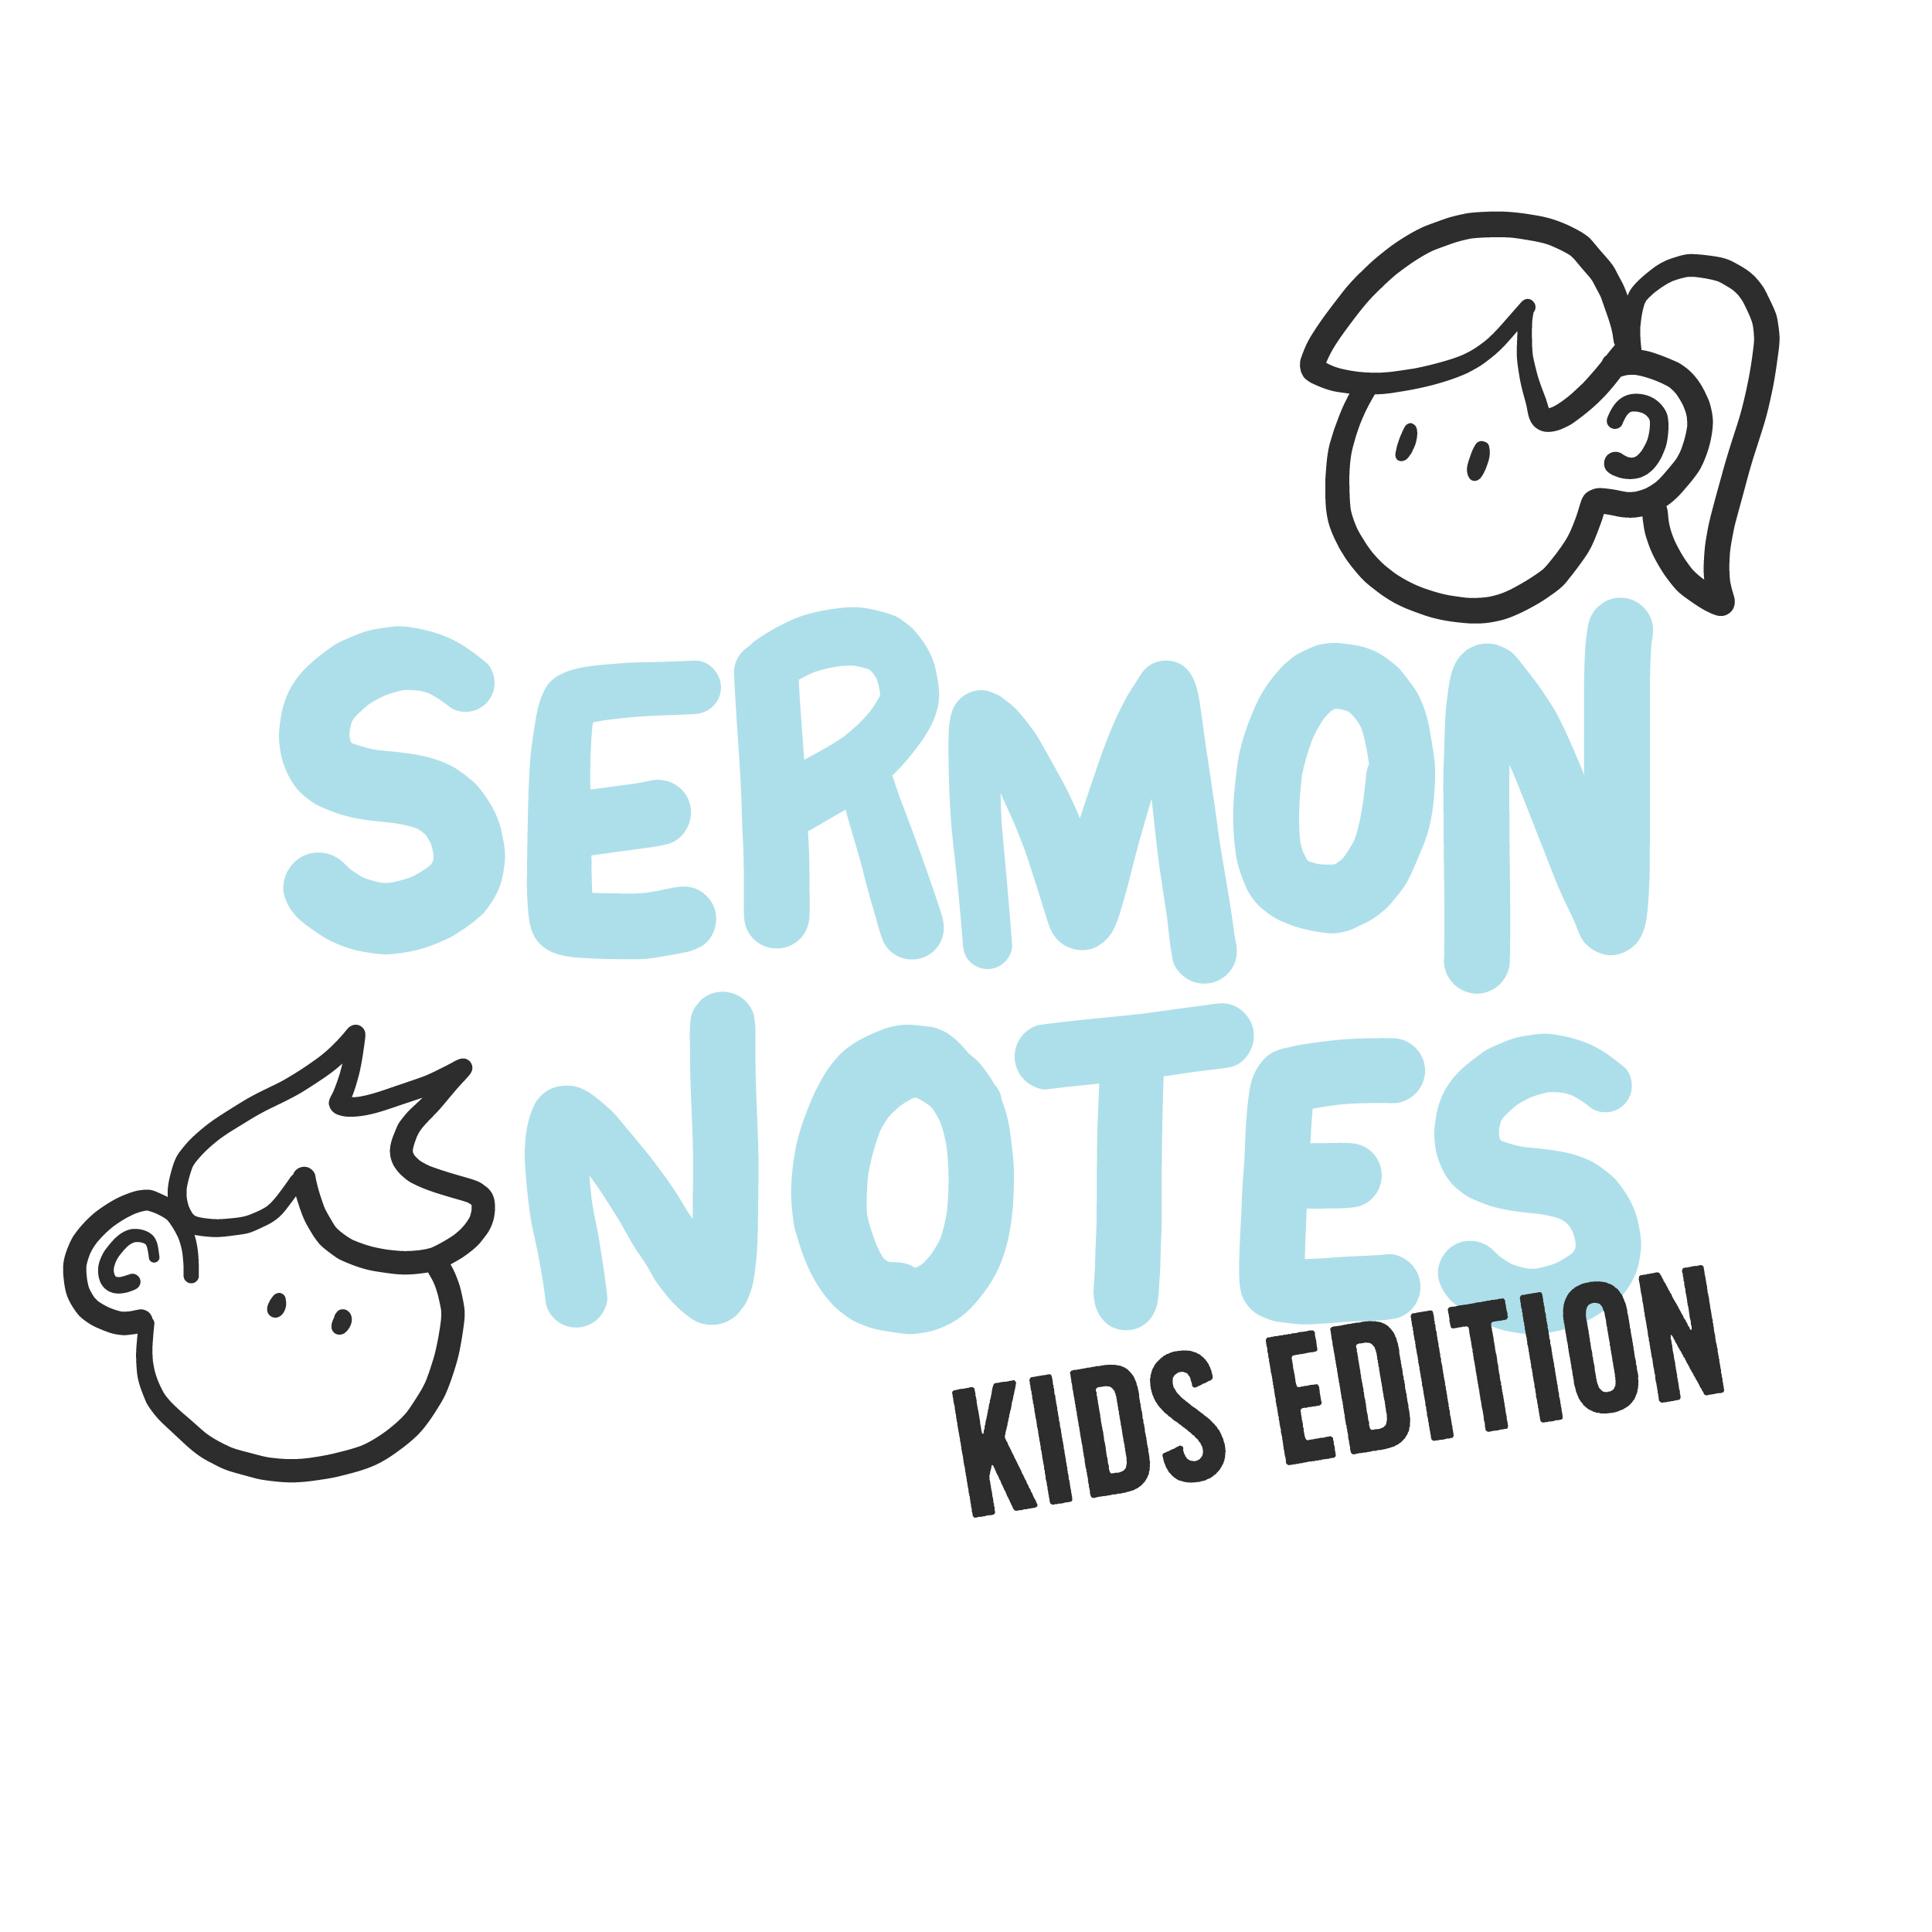 Sermon Notes Kids Edition